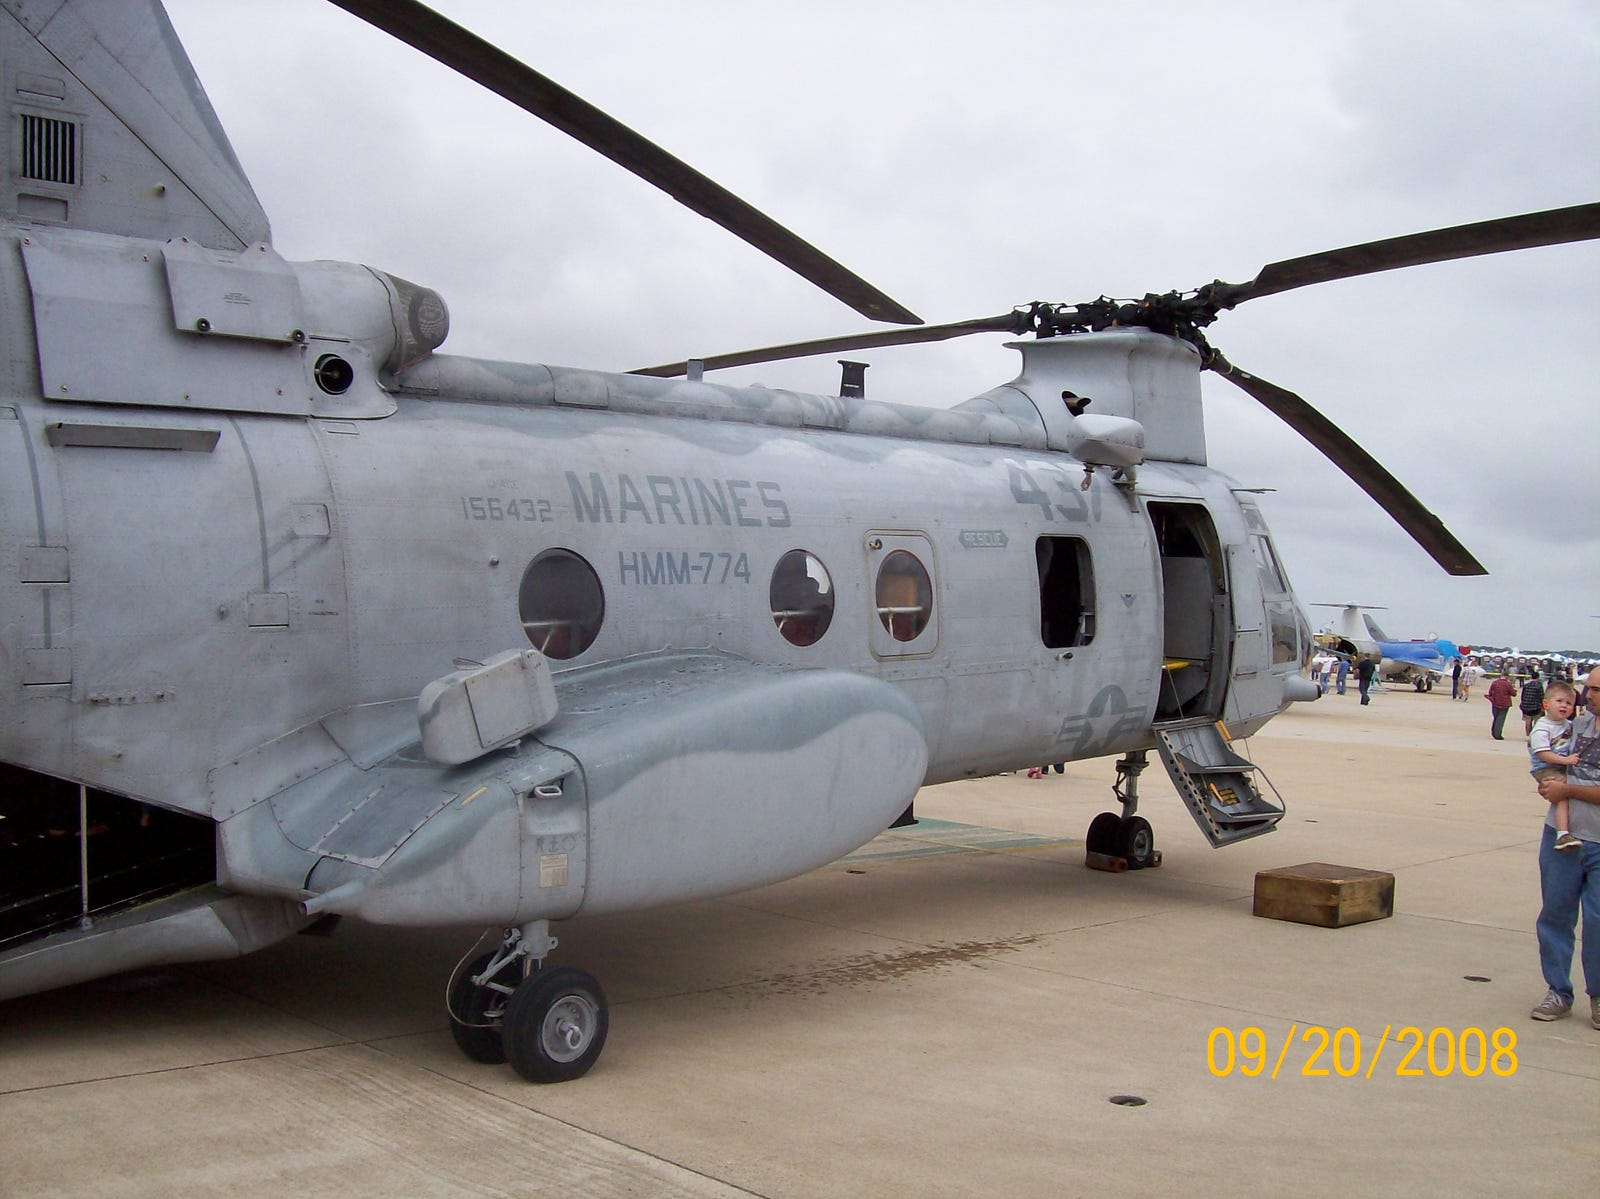 A Ch-46 Sea Knight,more commonly called the Phrog, flew with Hmm-774 from 1970 through to 2016